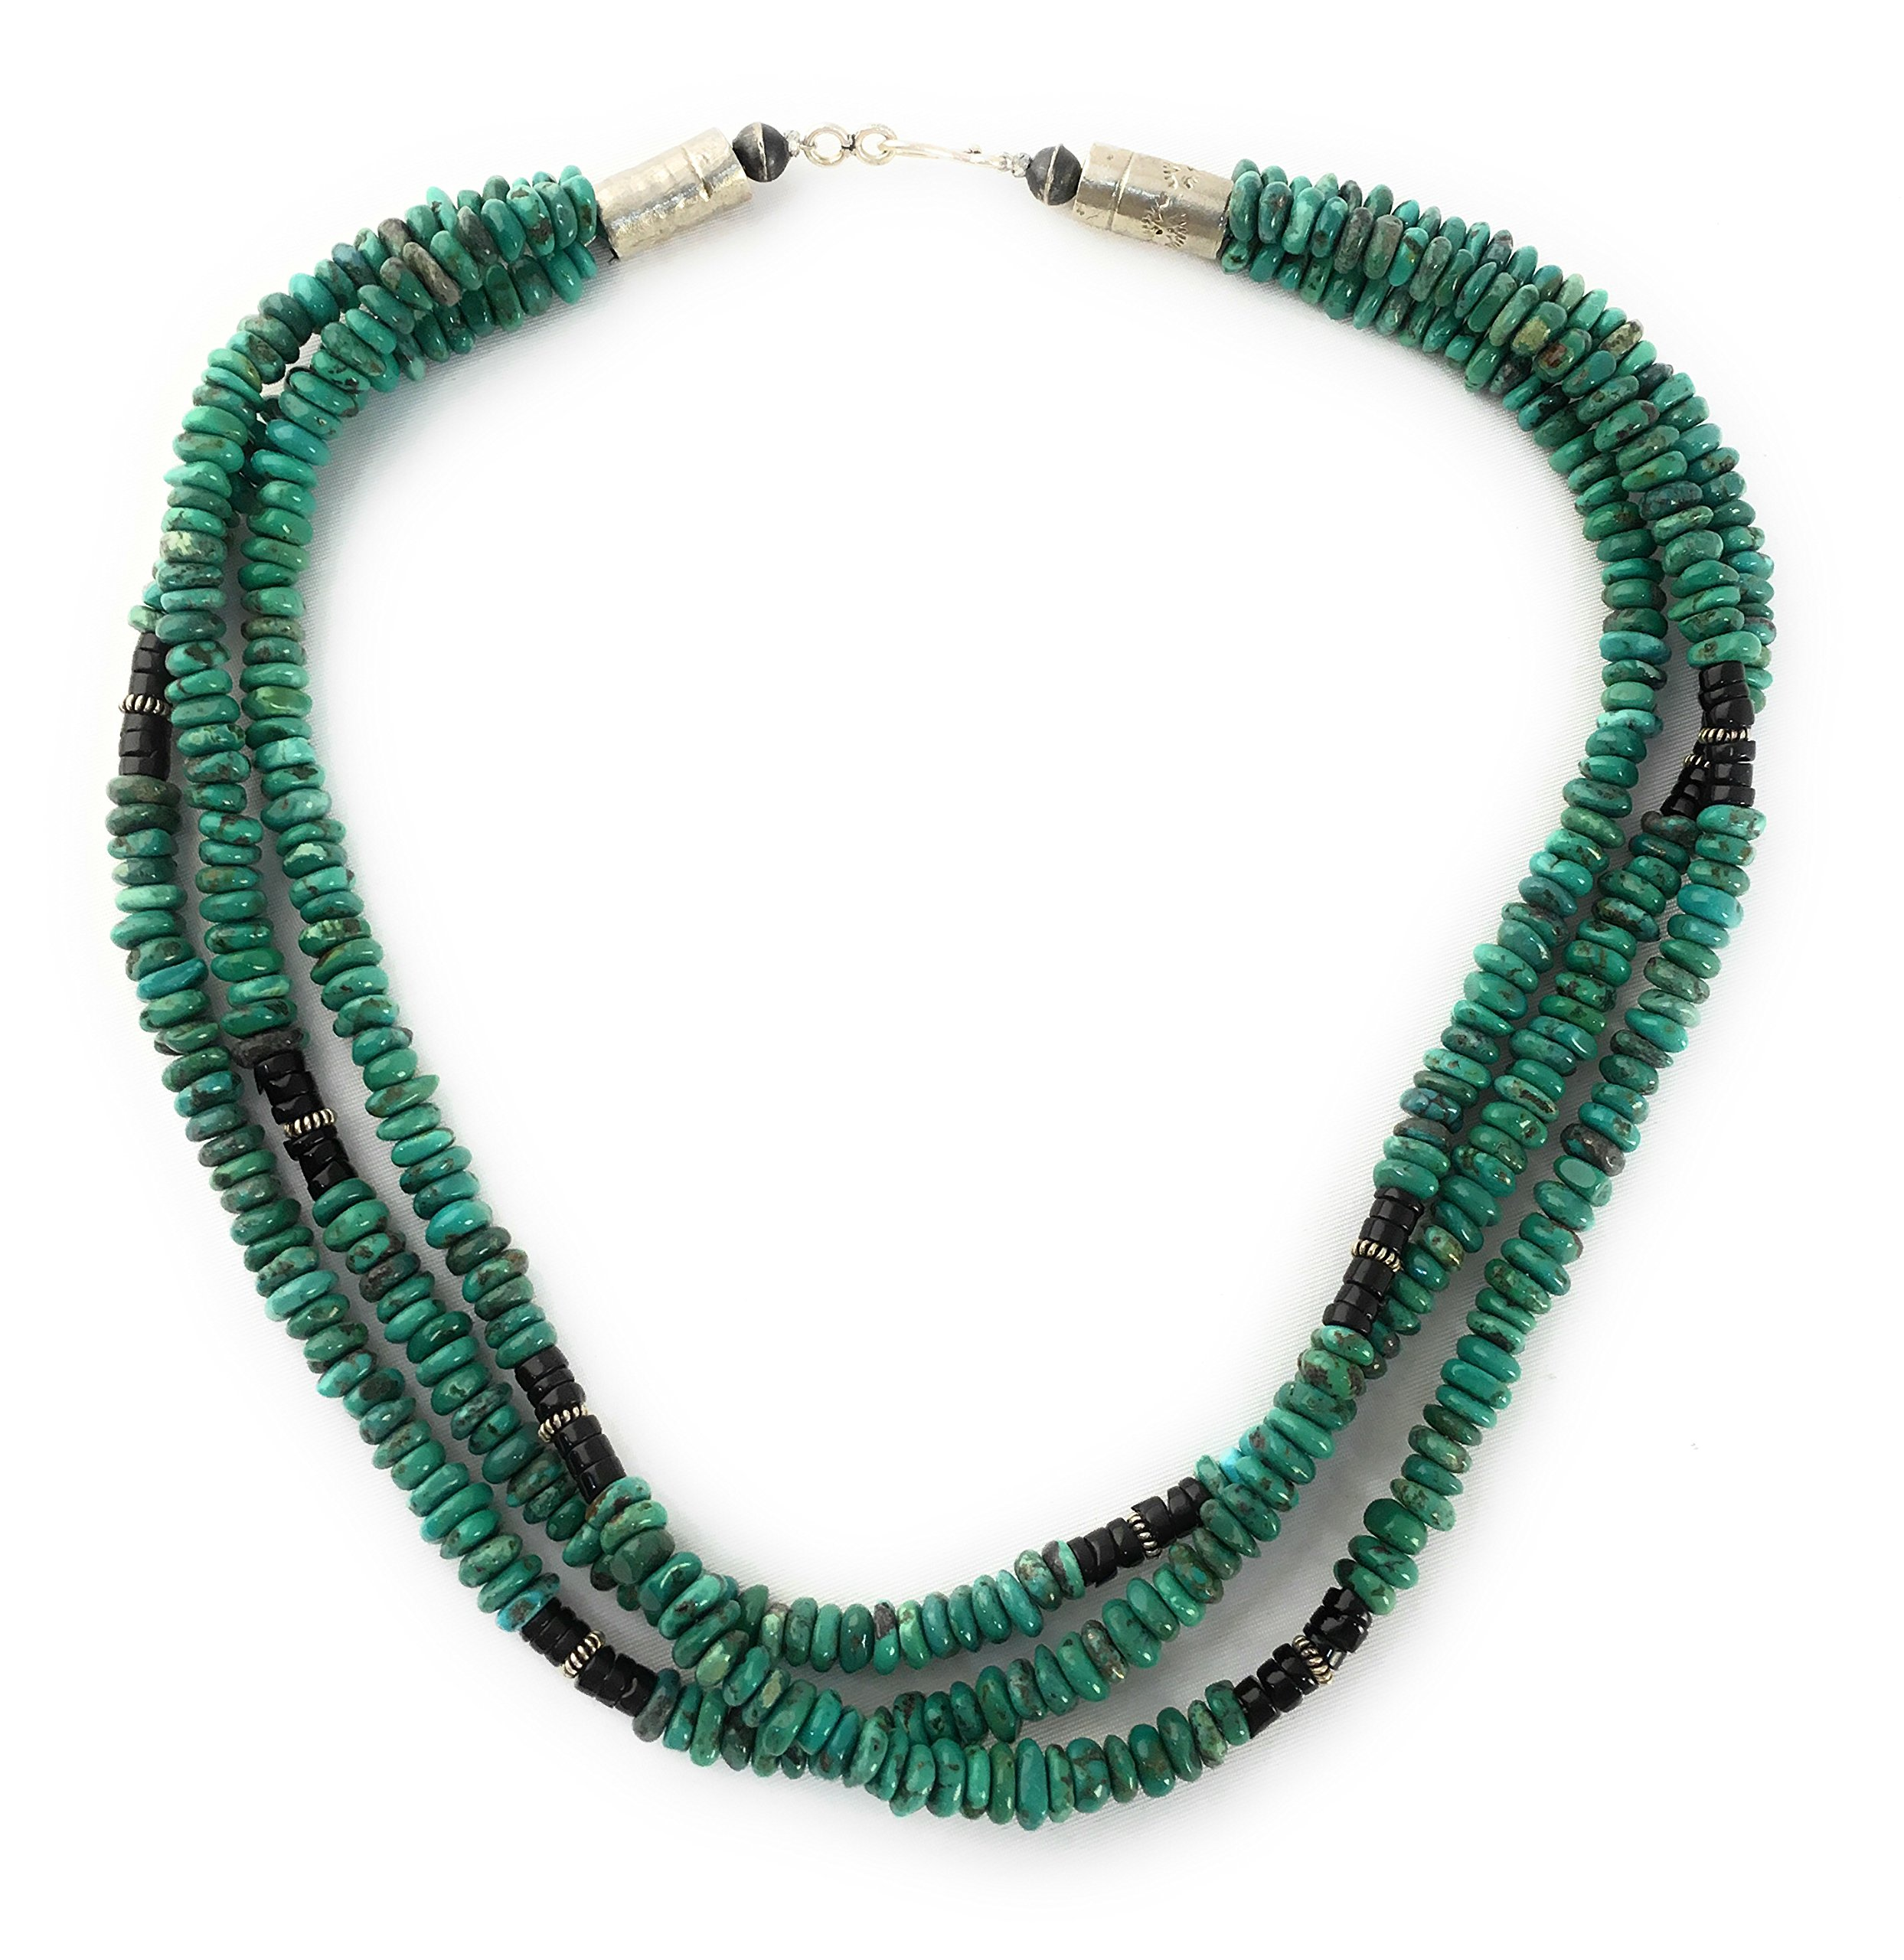 Masha Storewide Sale ! Sterling Silver Necklace By Turquoise, Heishi, Made in USA - Exclusive Southwestern Handmade Jewelry, Gift